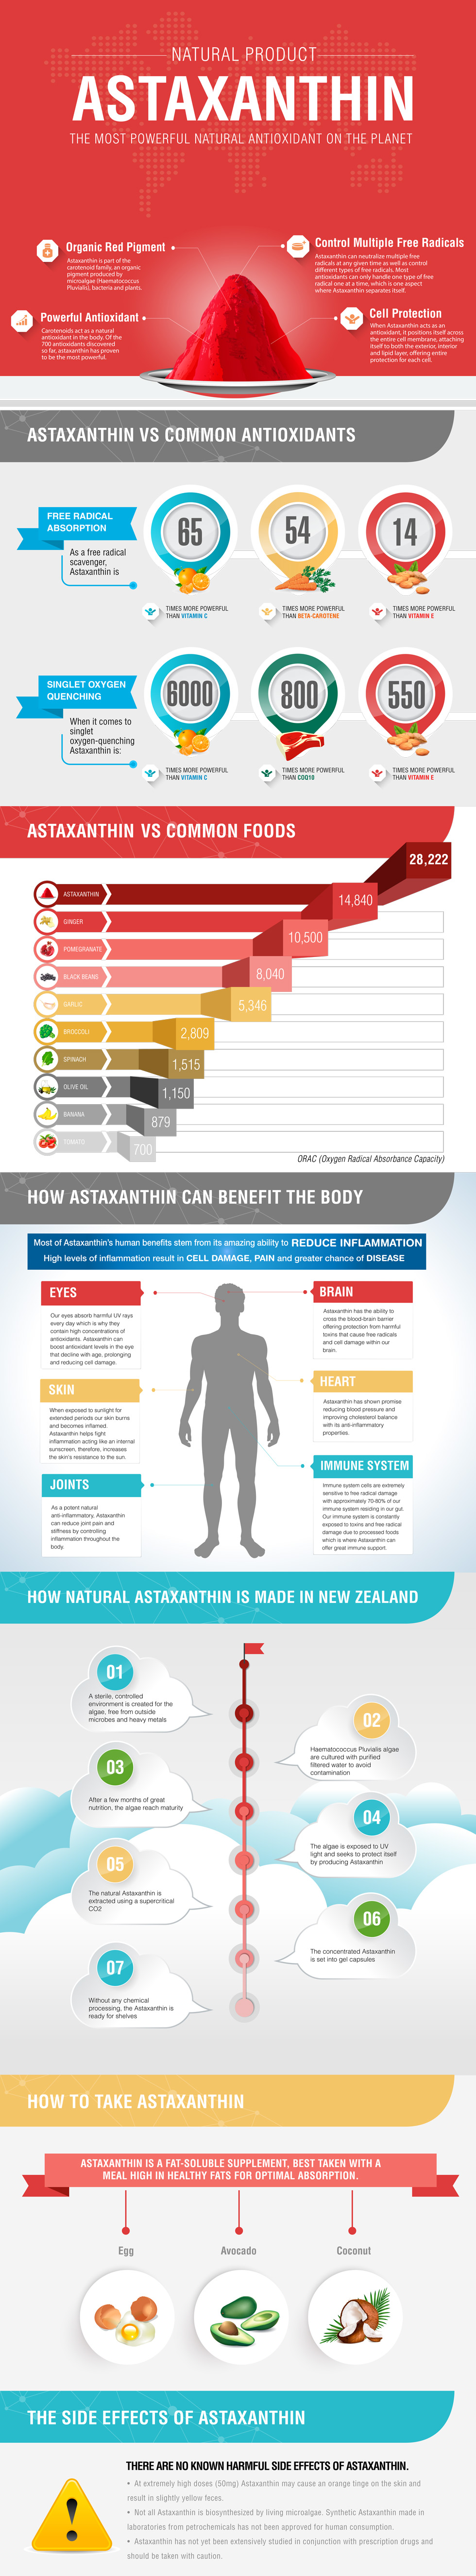 Astaxanthin - Nature's Most Powerful Antioxidant